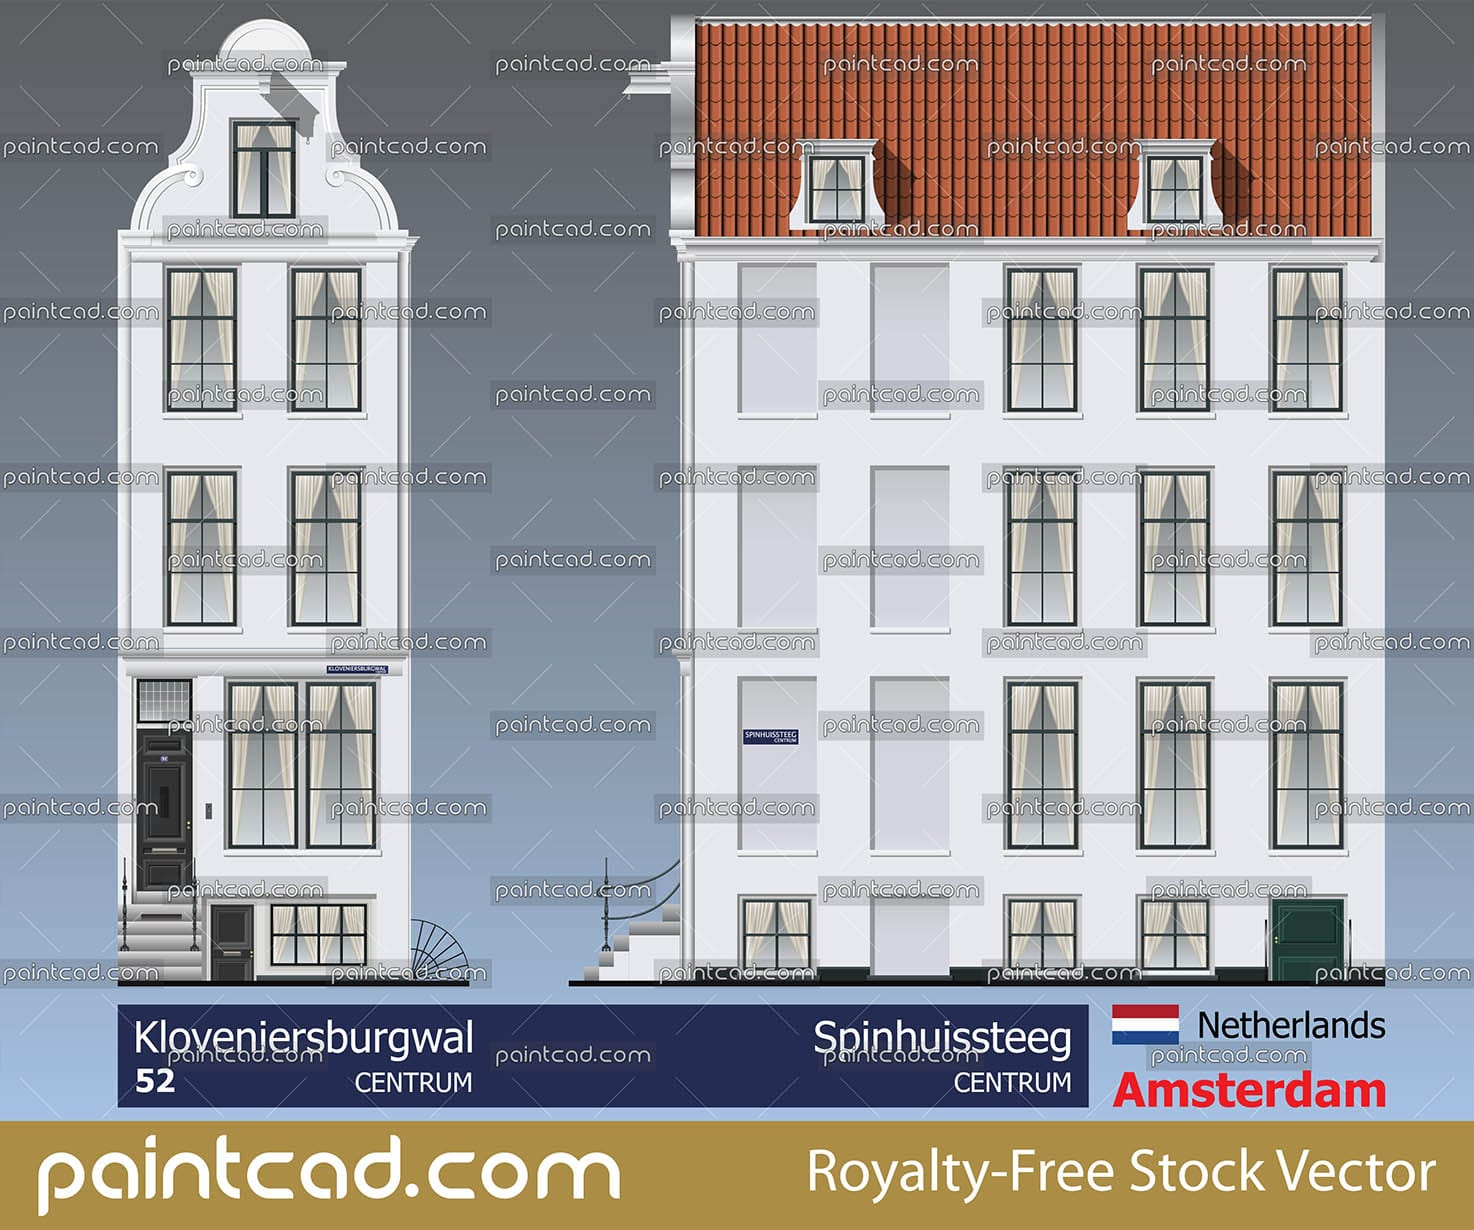 Old Amsterdam house situated on the Kloveniersburgwal canal - vector illustration